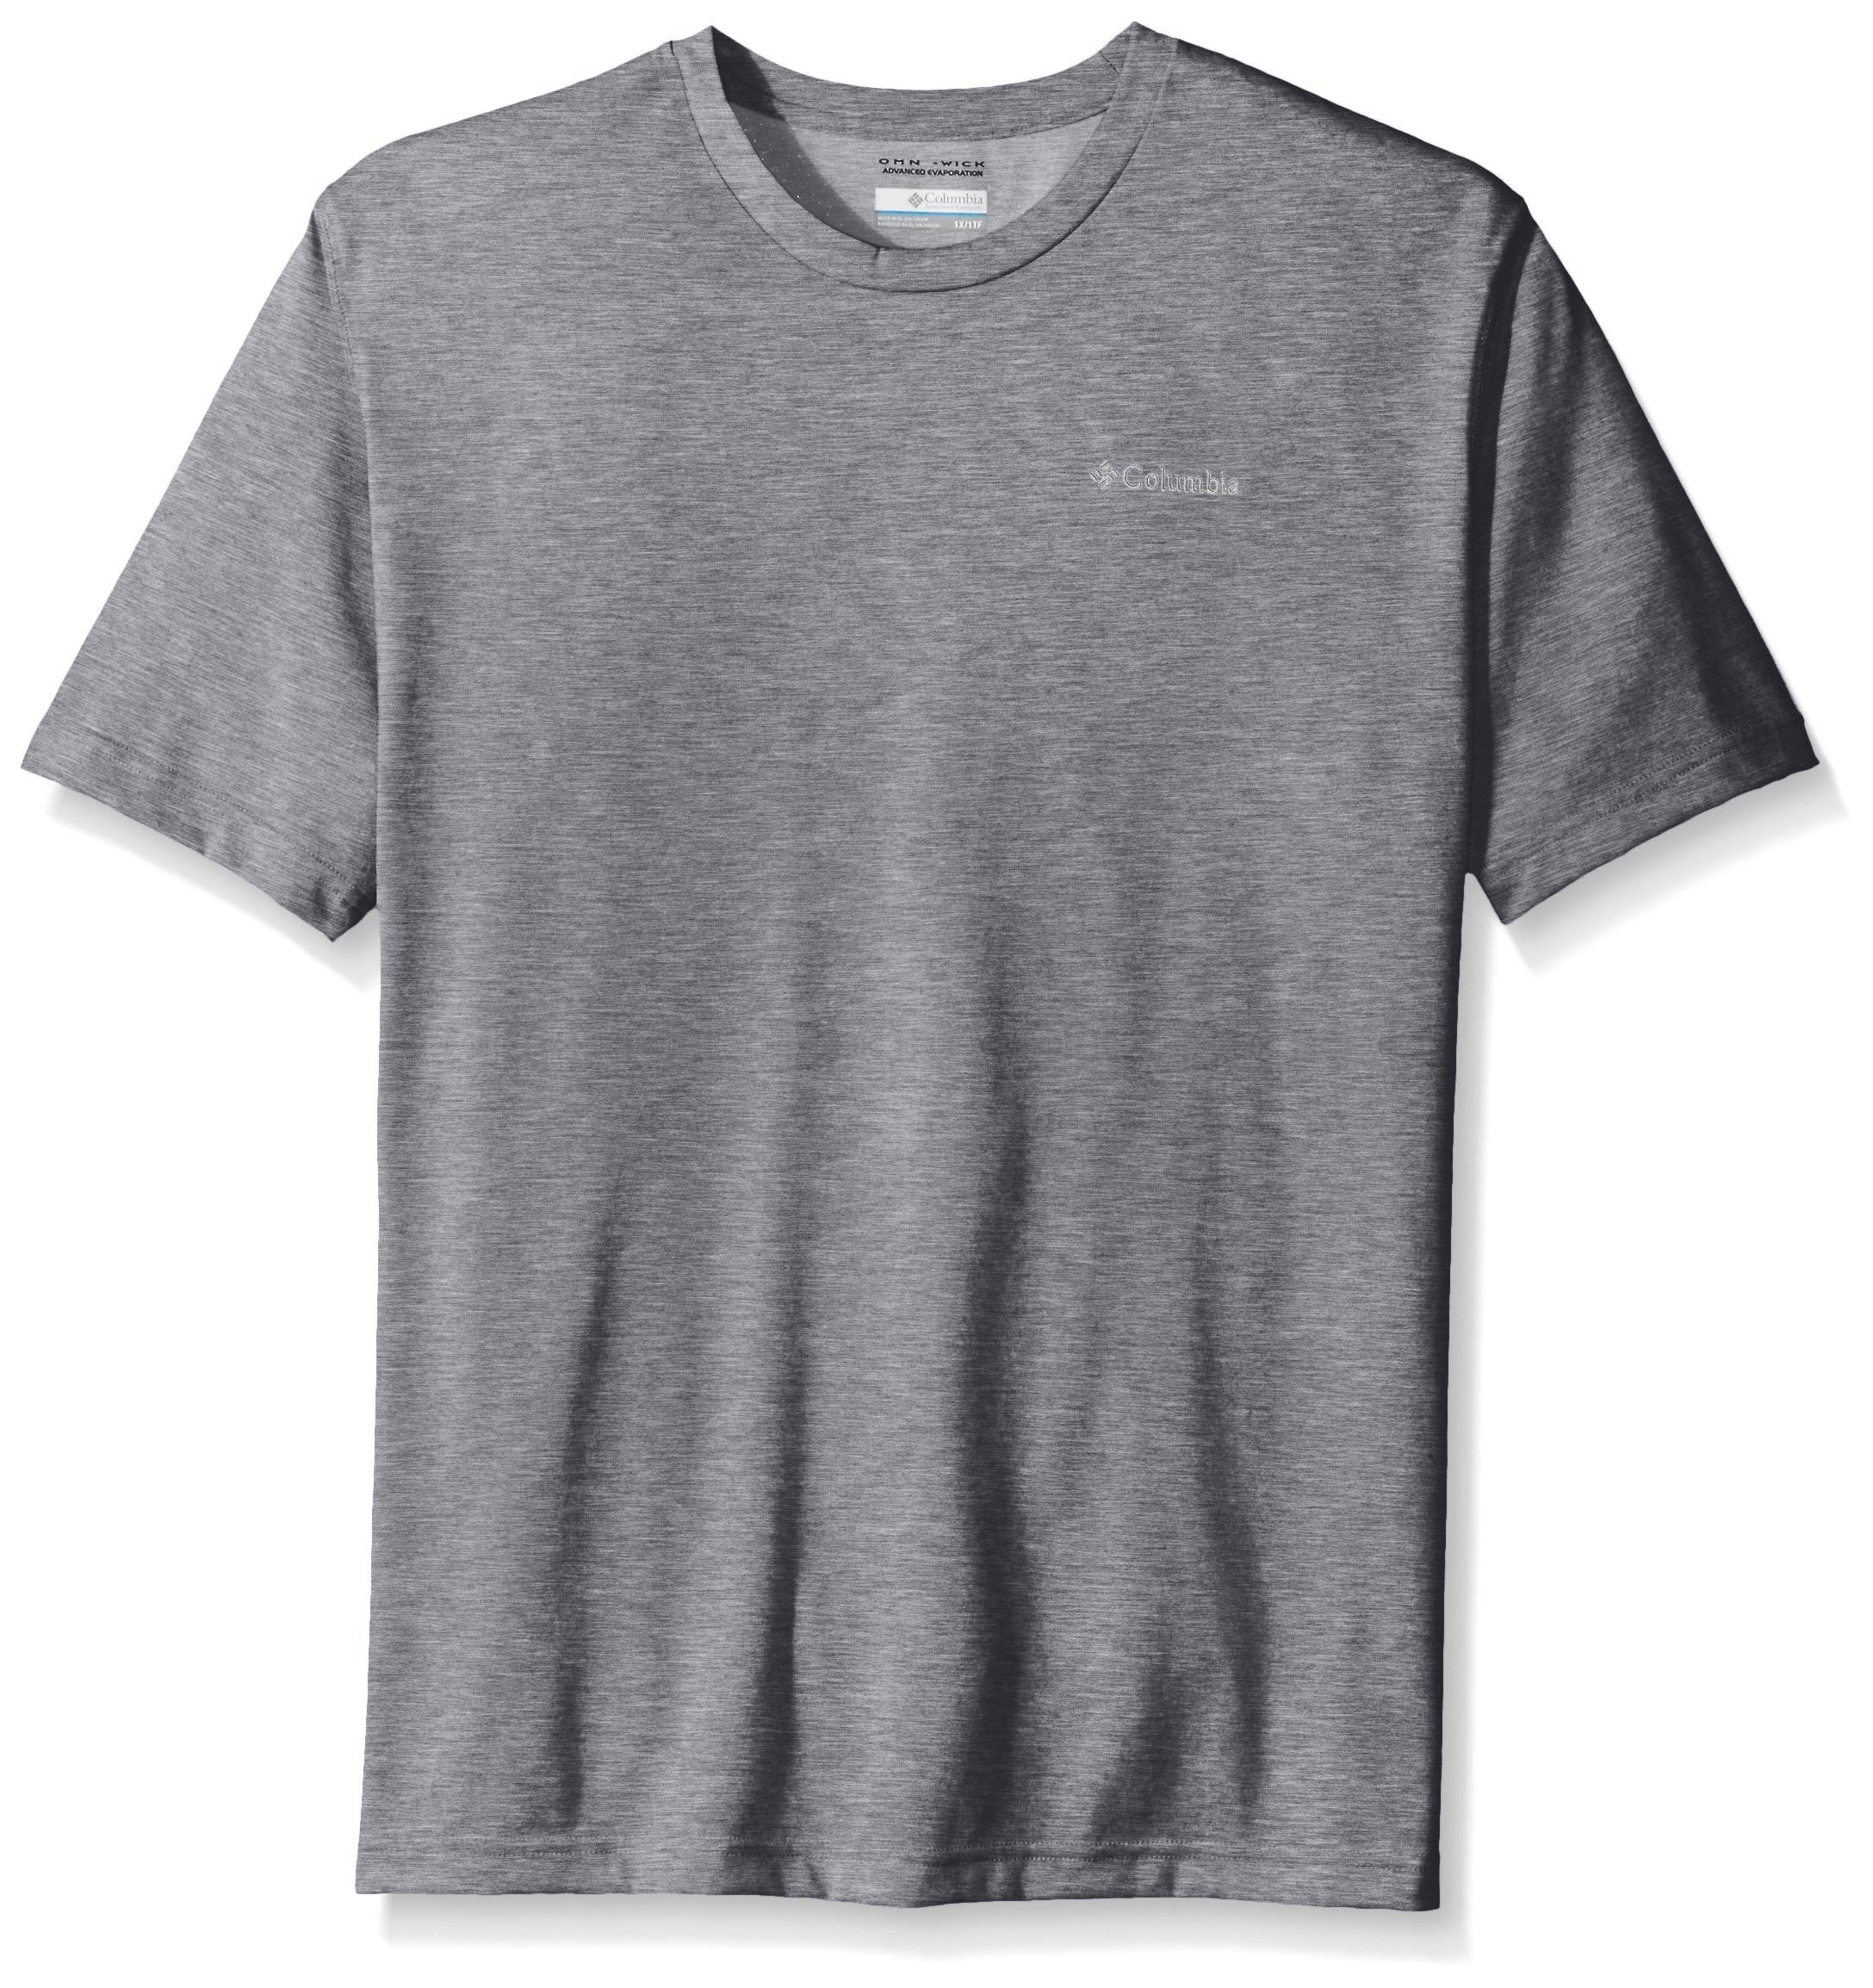 Ash 3x Hombre Gray Regular Columbia Heather Park De Equipo Thistletown Big Para Hwzqqg